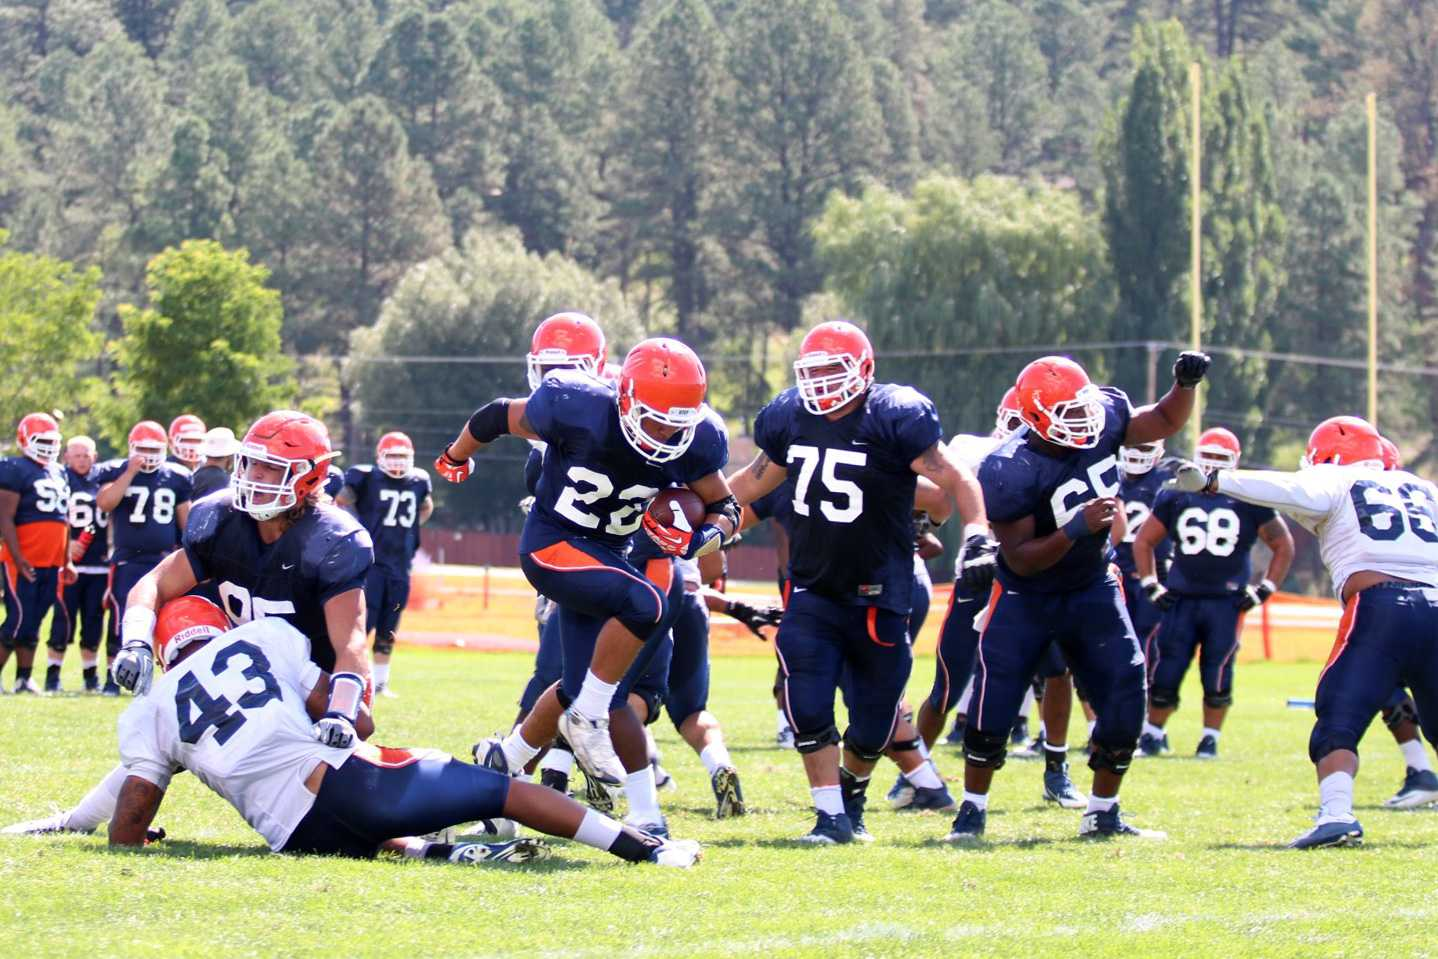 UTEP football team will head to summer training camp in Ruidoso, NM, on Aug. 3.